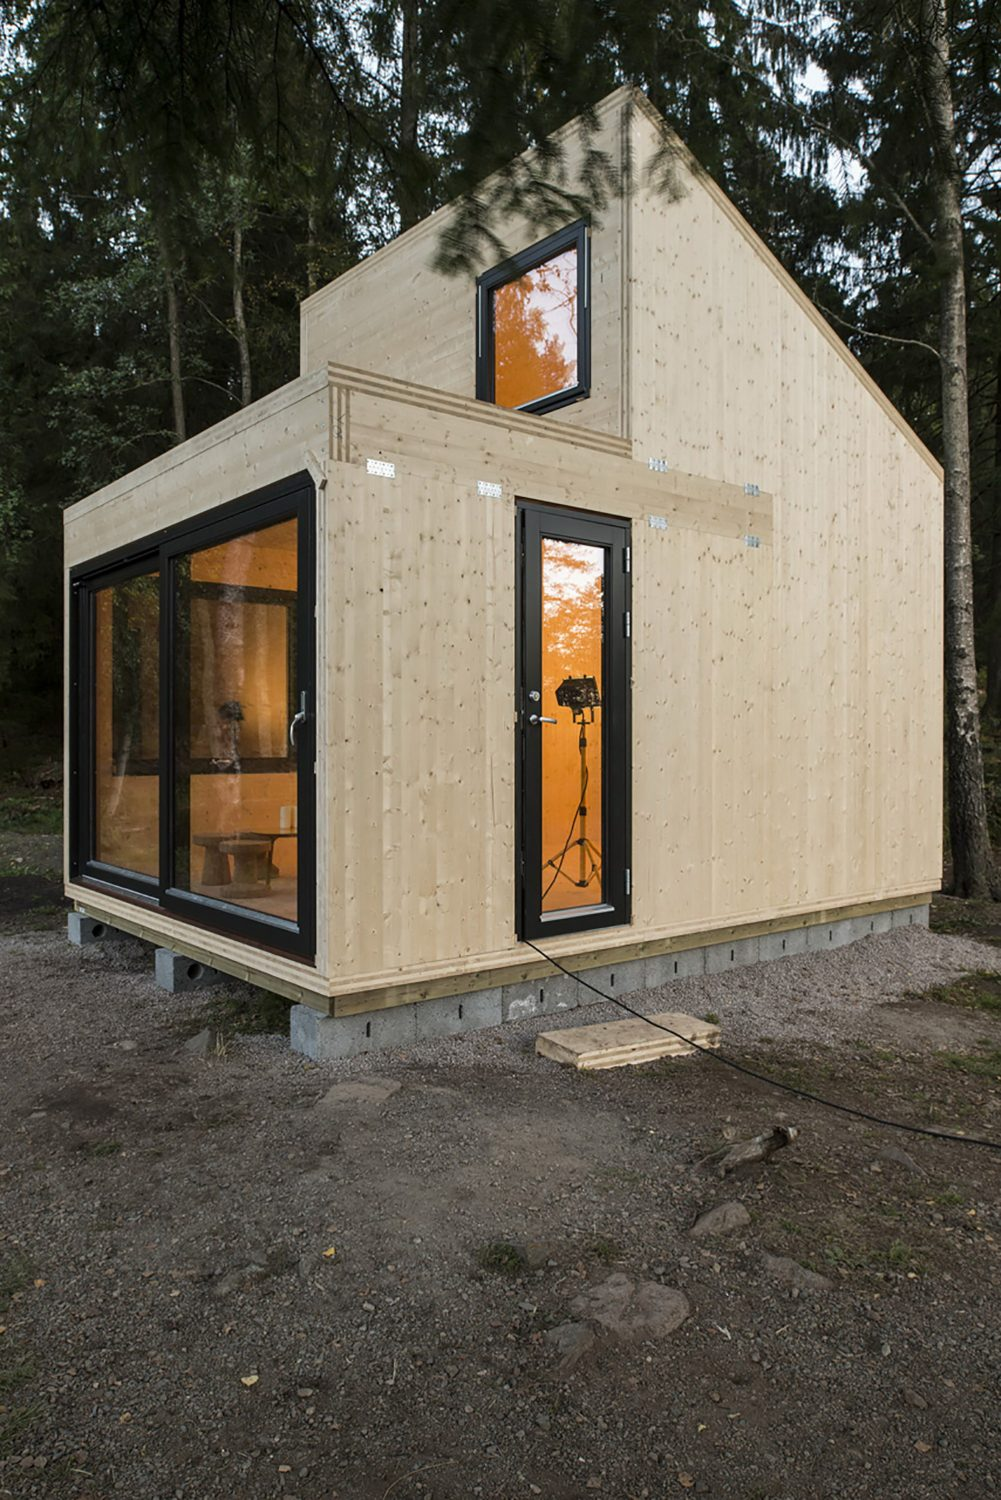 Woody15 – A Tiny Cabin by Marianne Borge